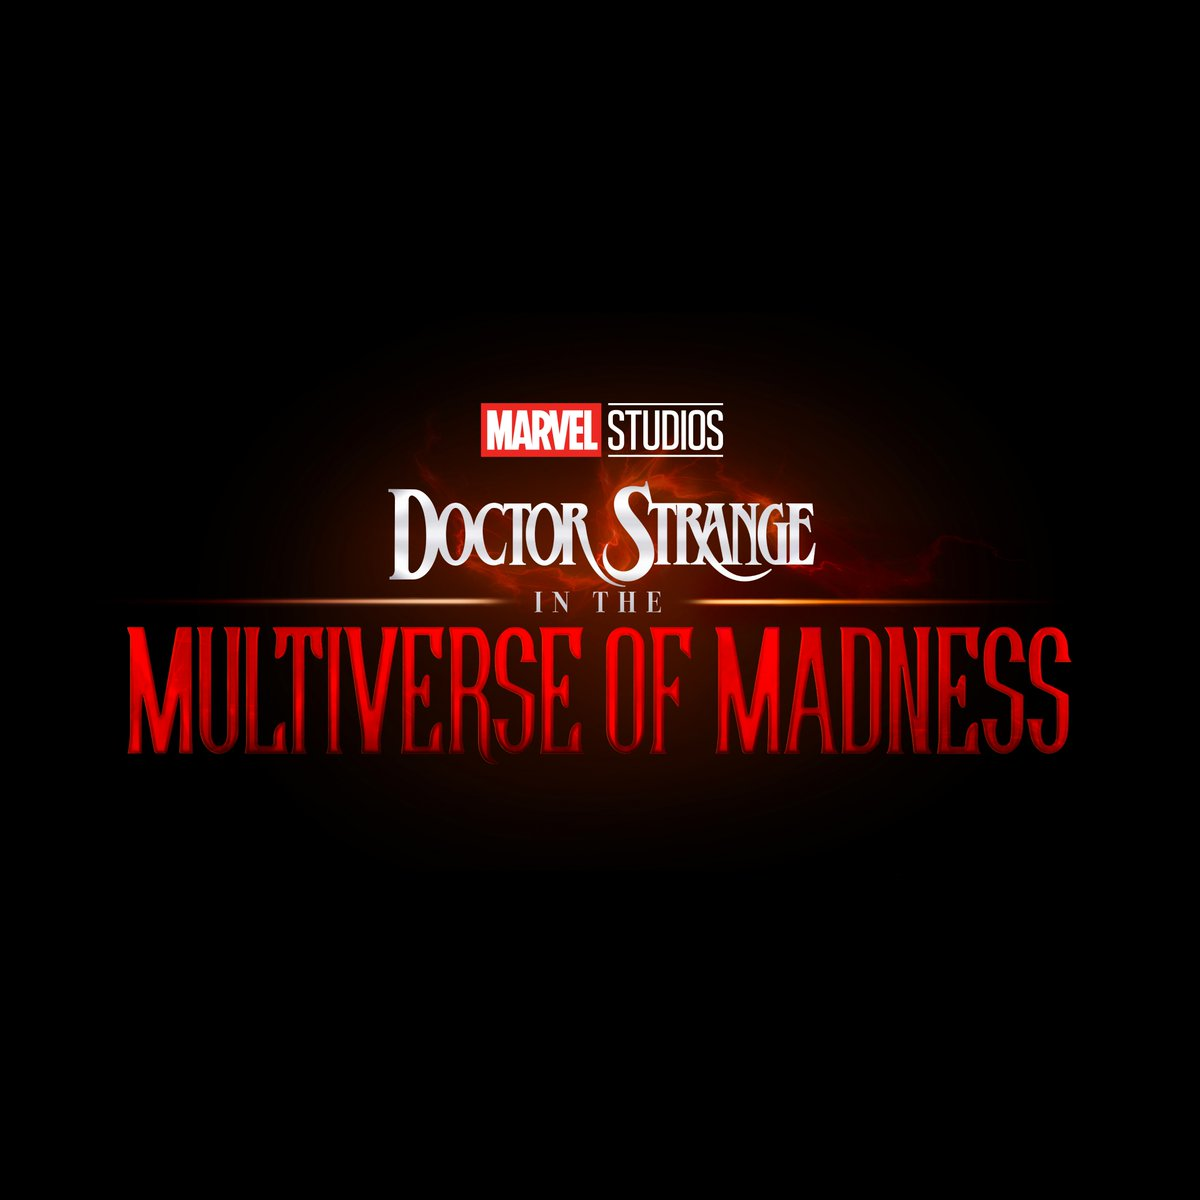 Doctor Strange in the Multiverse of Madness da Marvel Studios.